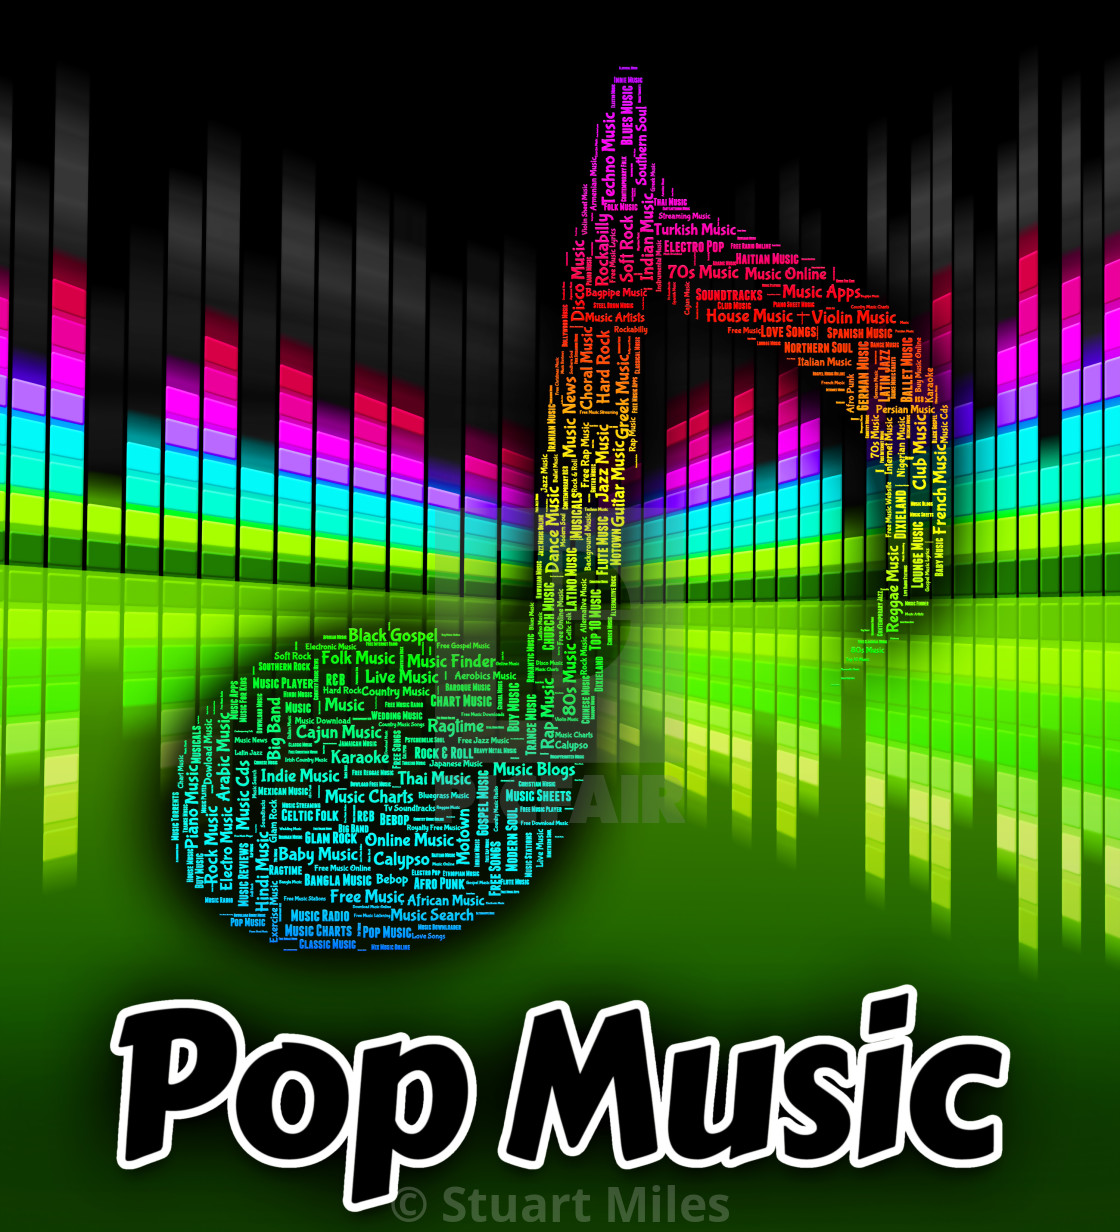 Pop Music Means Sound Track And Melodies - License, download or